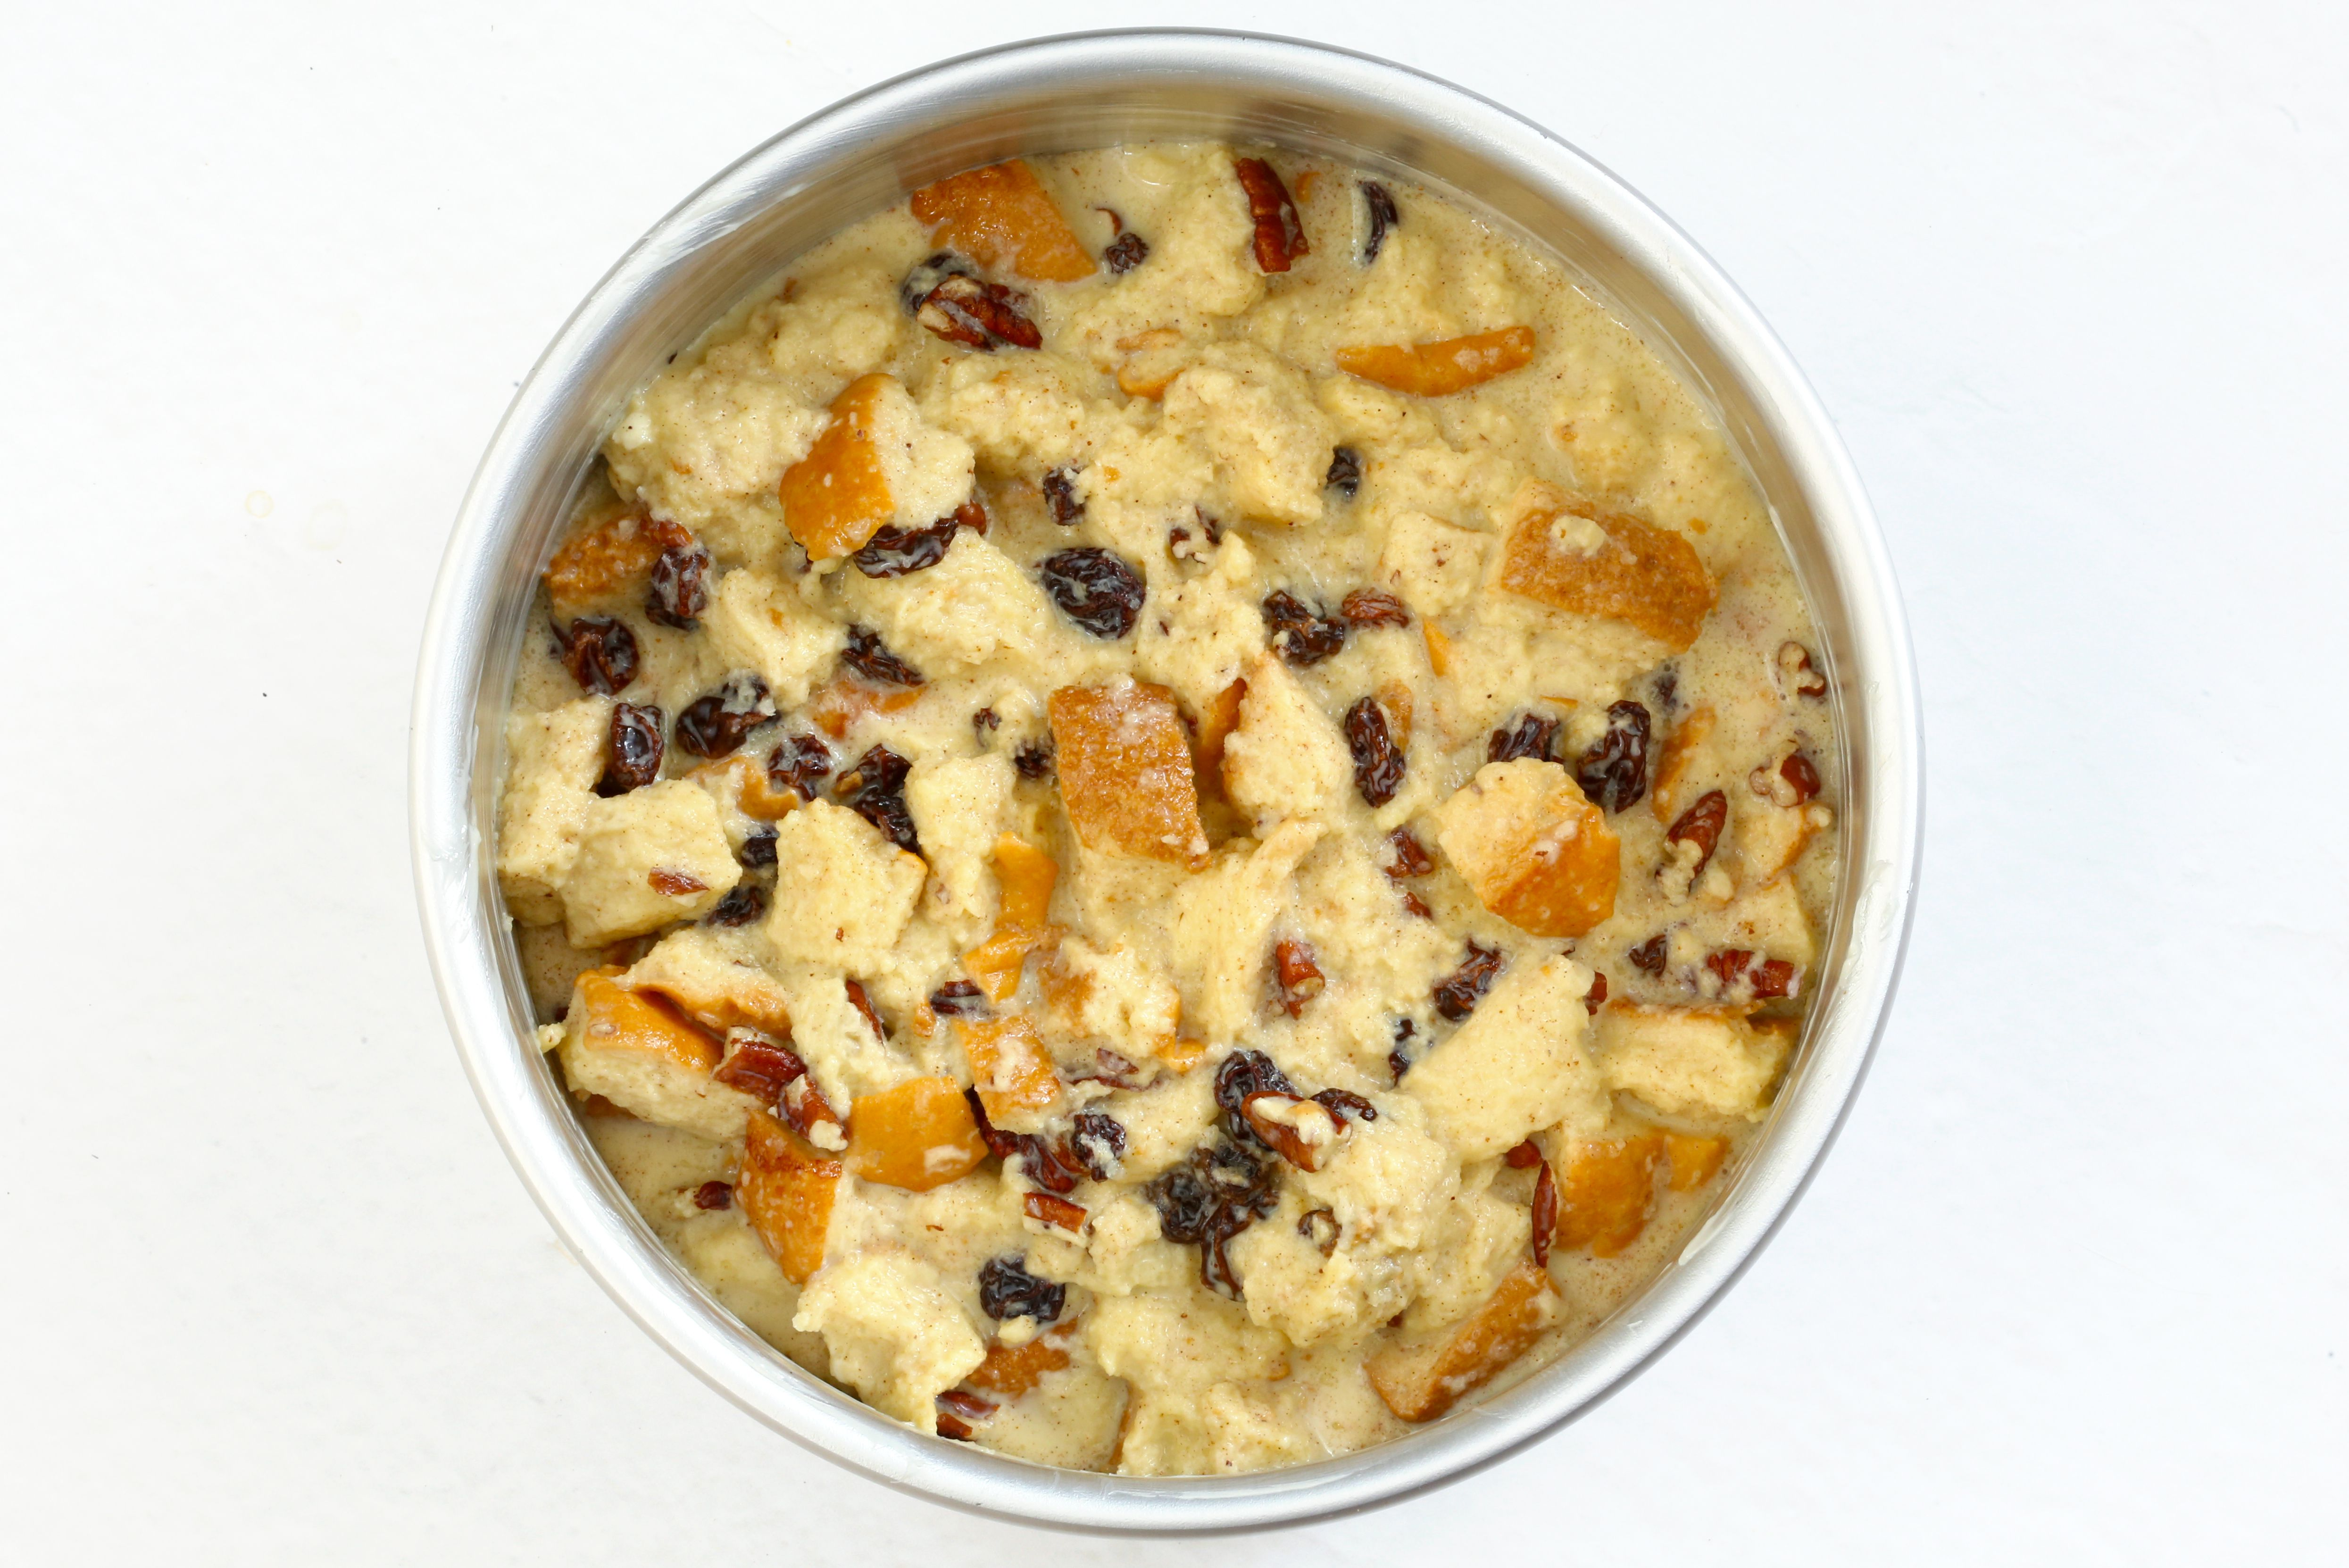 Instant Pot bread pudding in the pan.